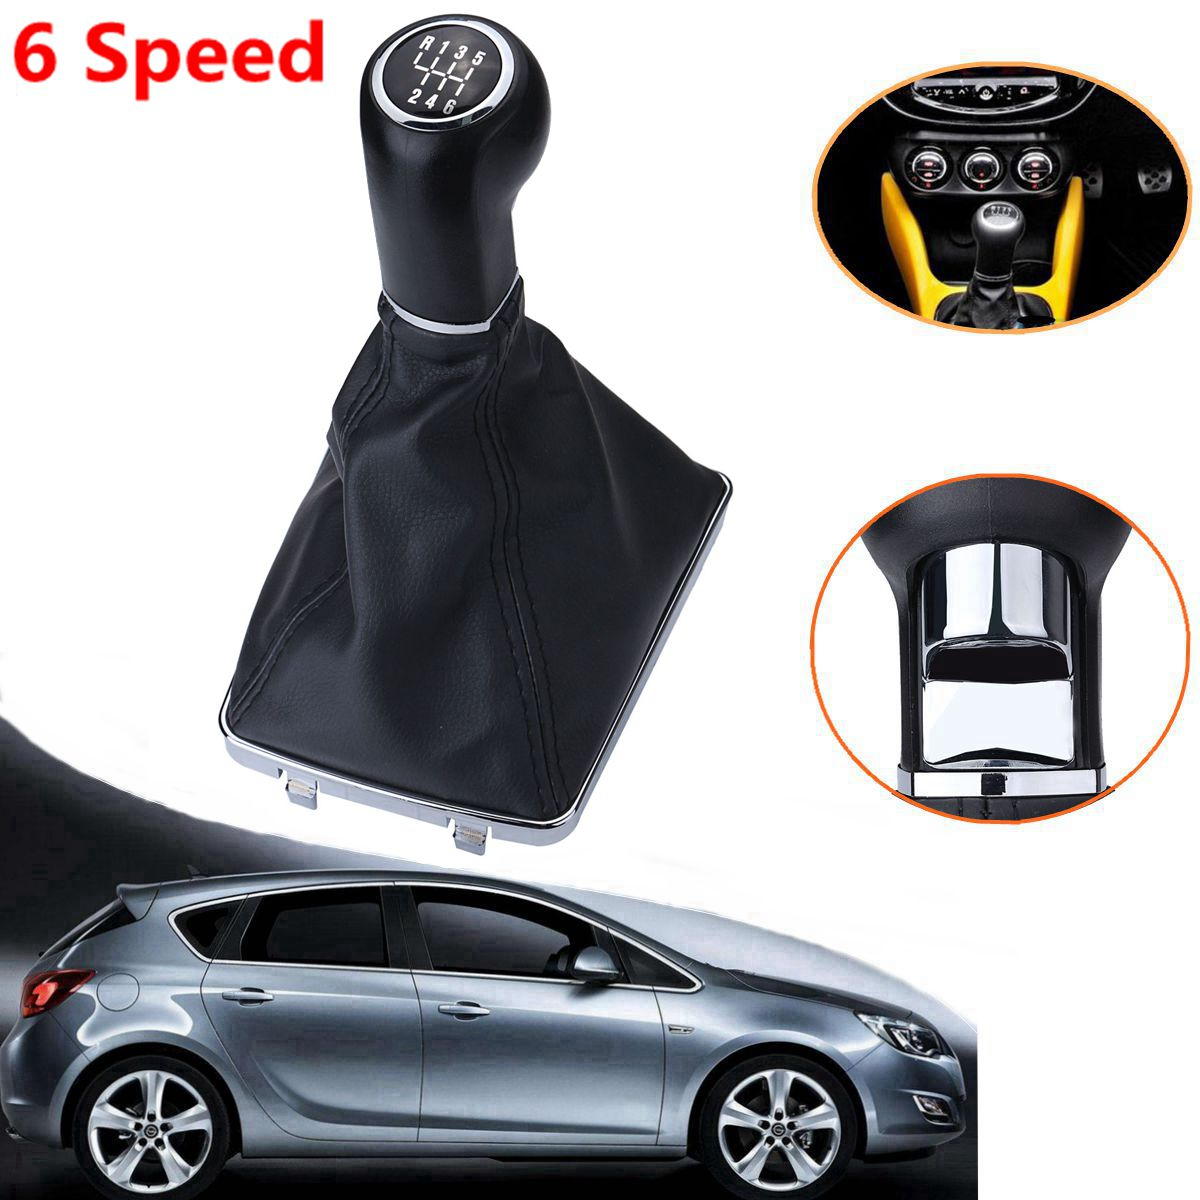 6 Speed Car Gear Shift Knob Lever Stick Gaiter Boot For Opel Astra Corsa GTC 2005 2006 2007 2008 2009 2010